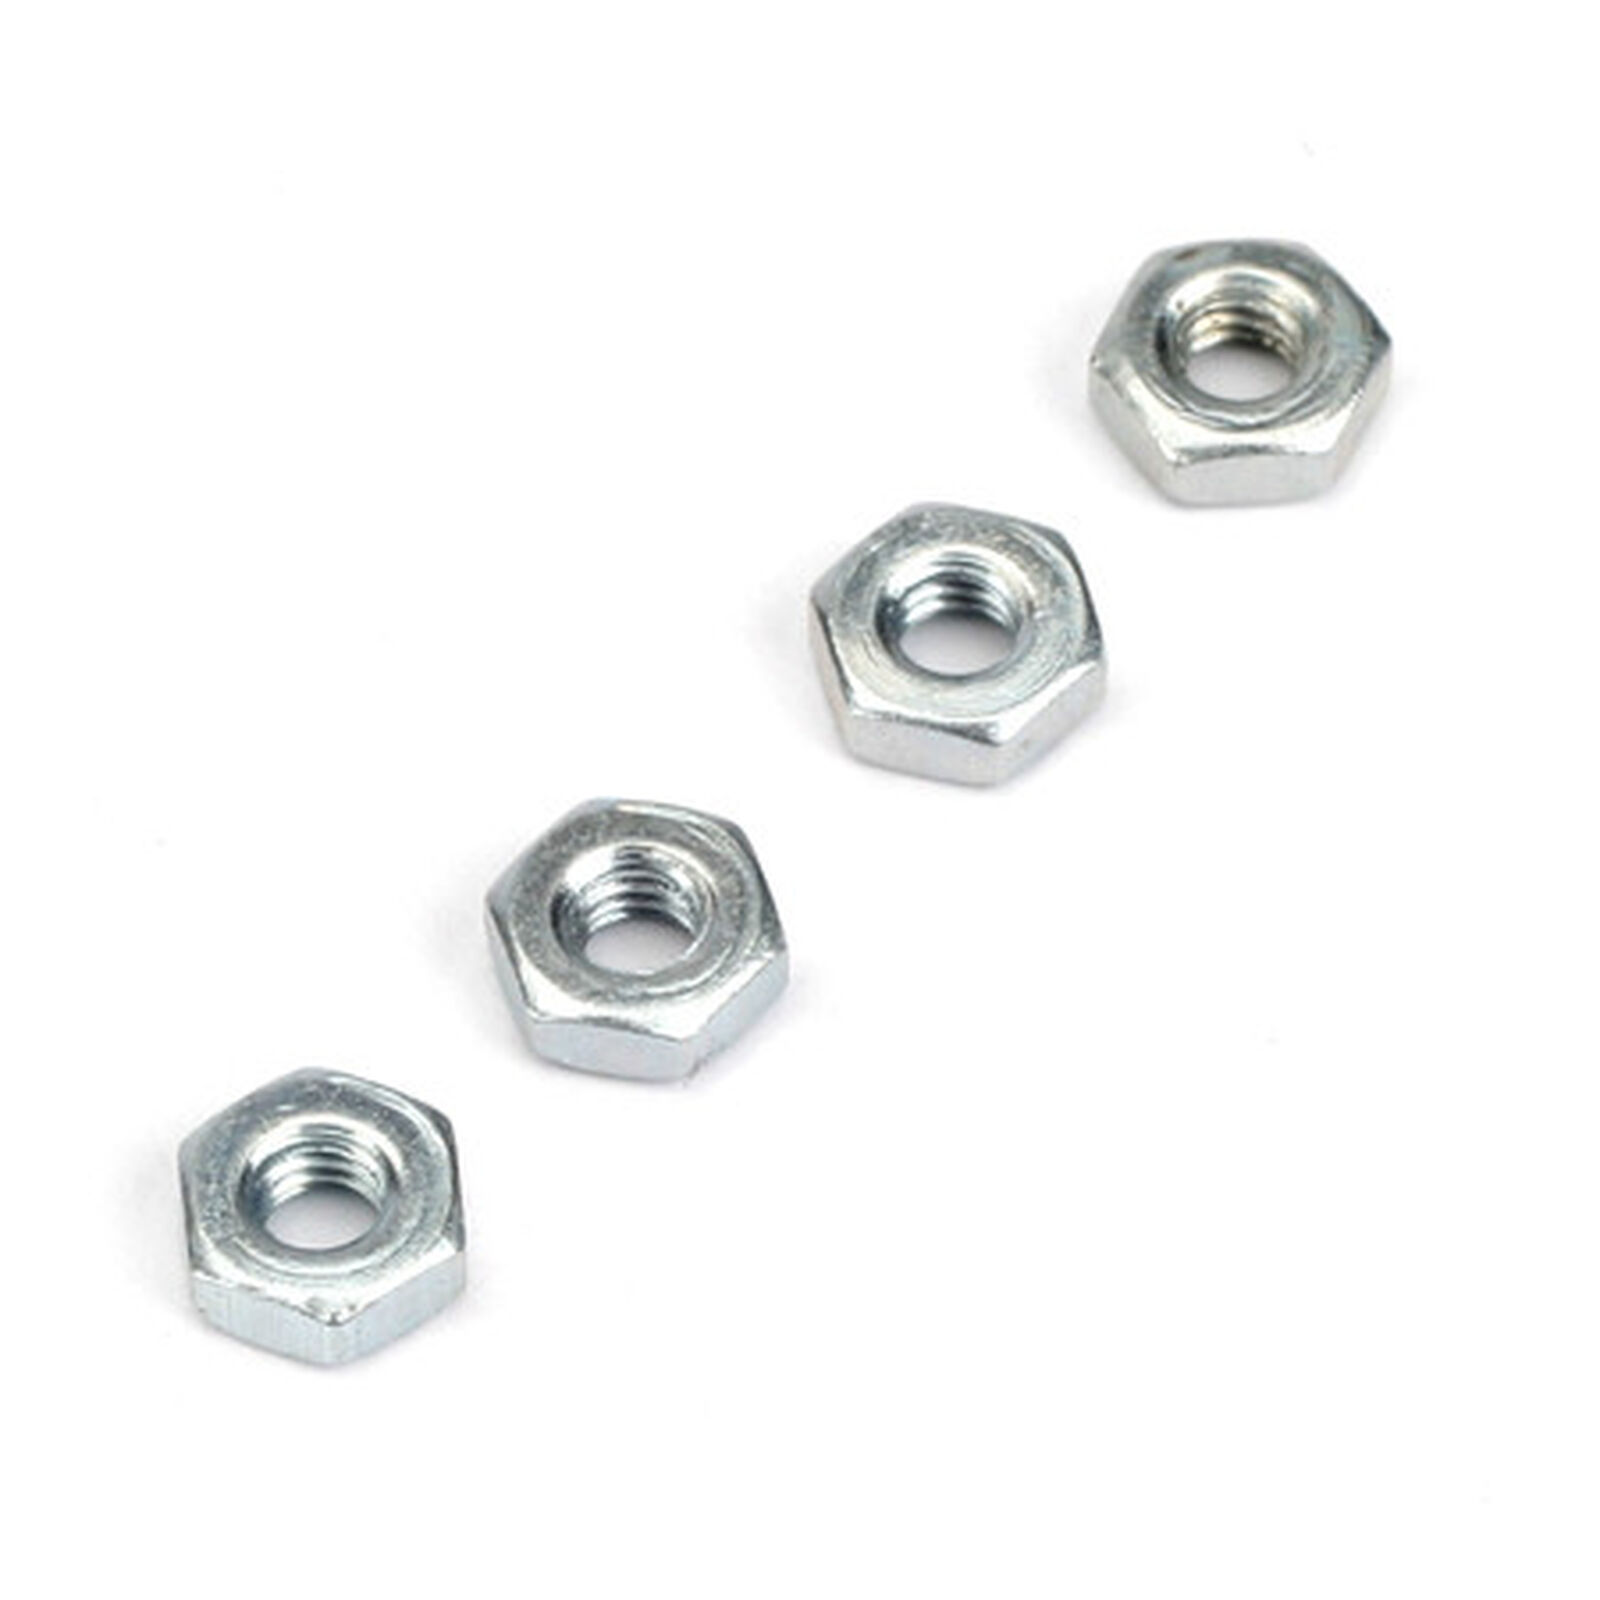 Hex Nuts, 2.5mm